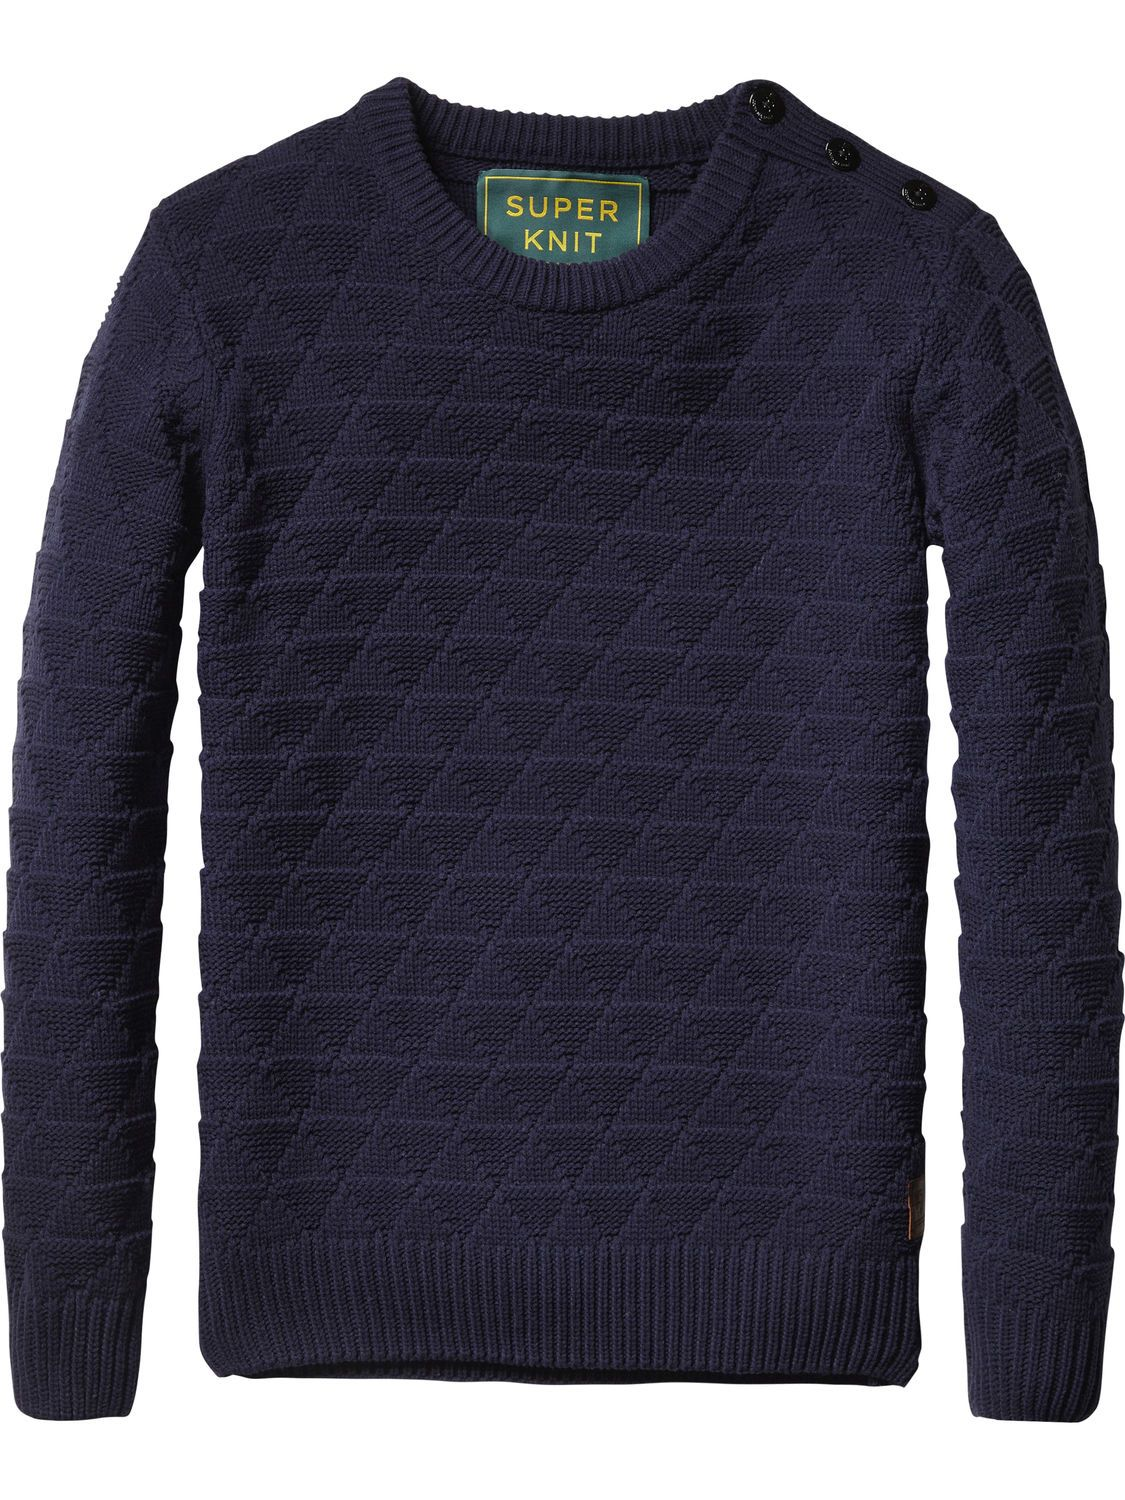 Cable Knit Pullover   Pullover   Men's Clothing at Scotch & Soda